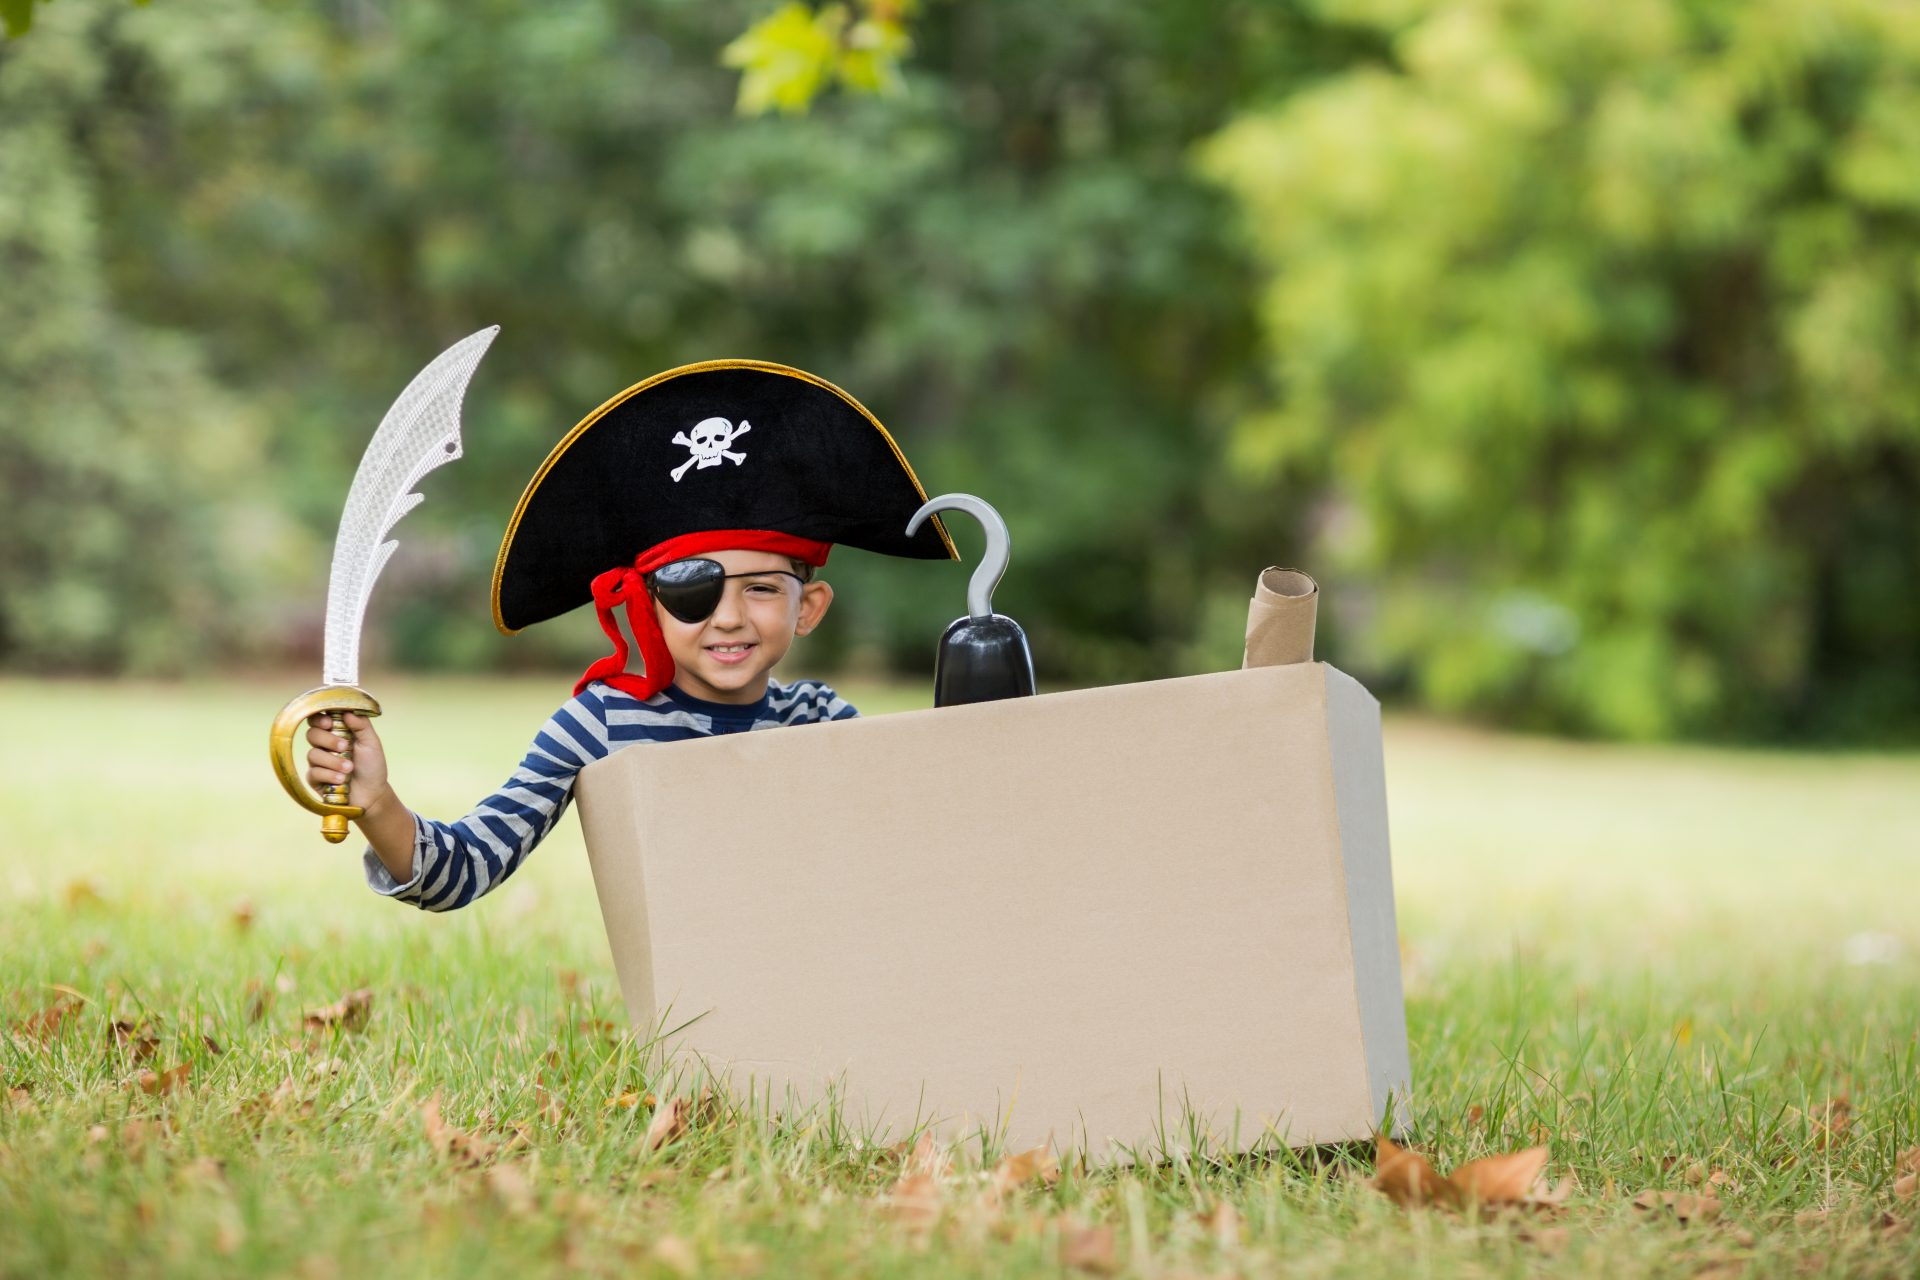 Child Pirate Image